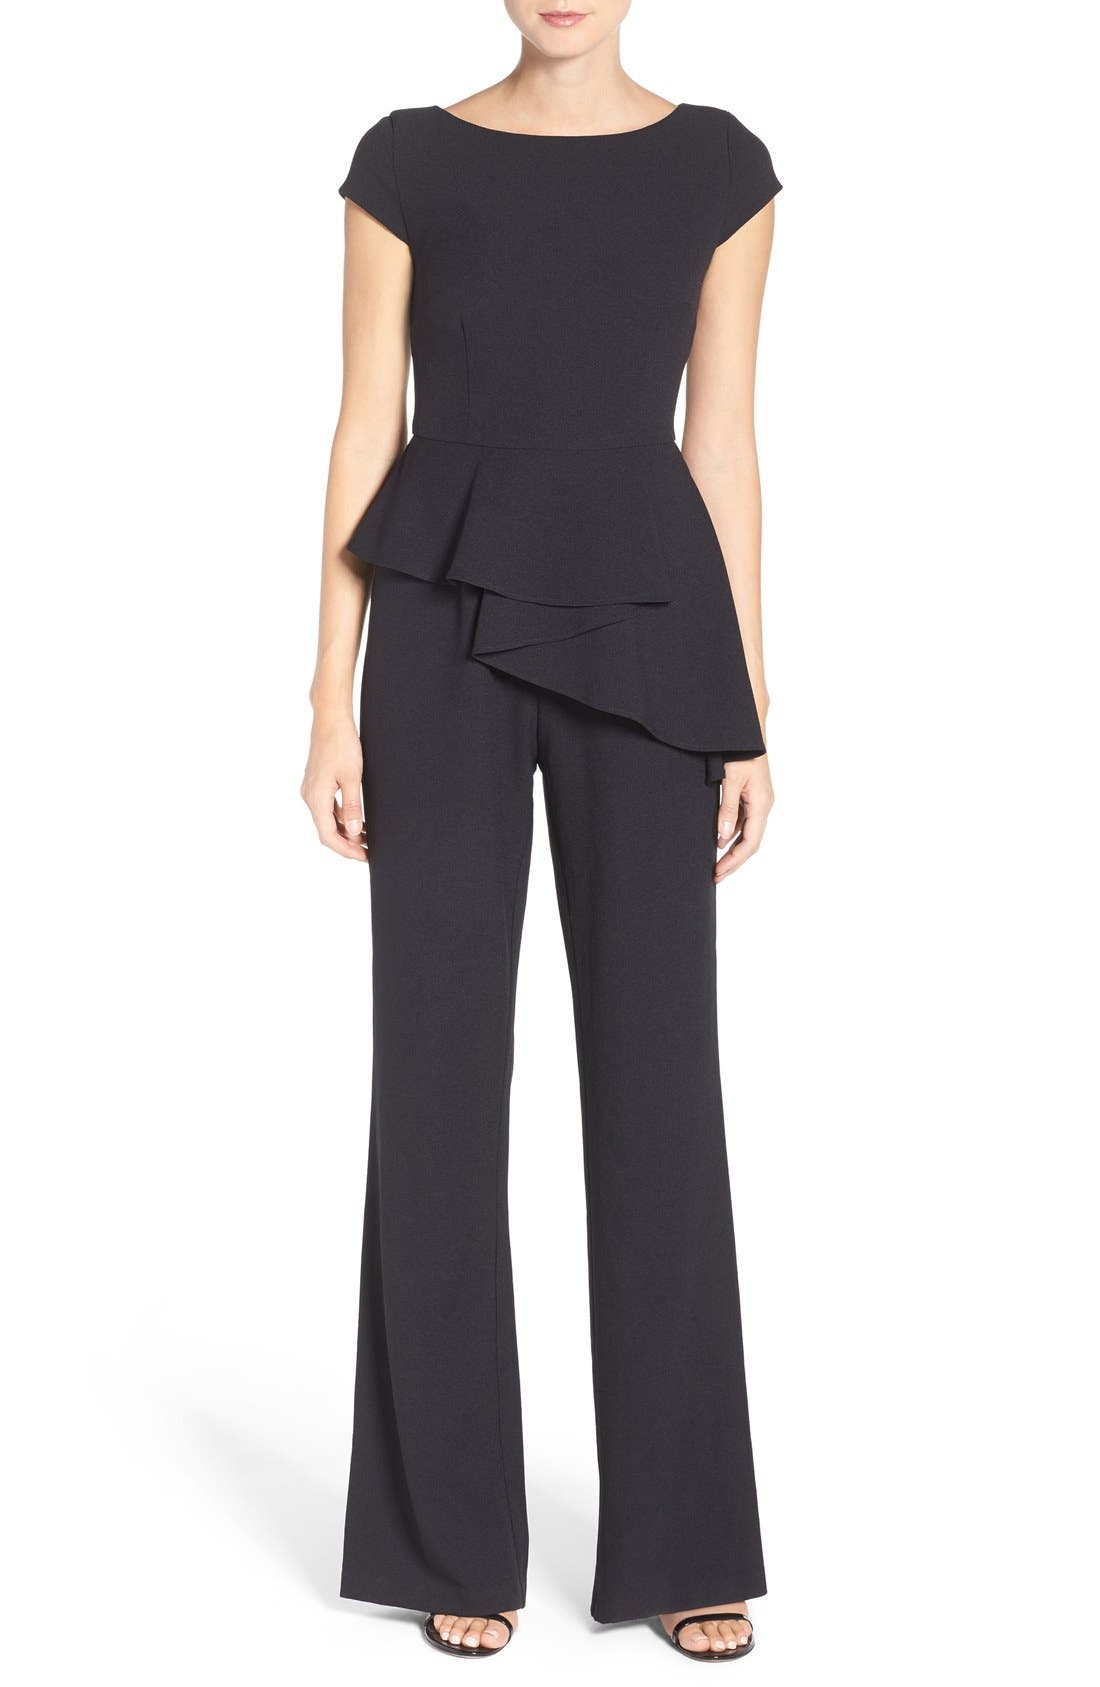 Eliza J Wide Leg Jumpsuit (Regular & Petite)